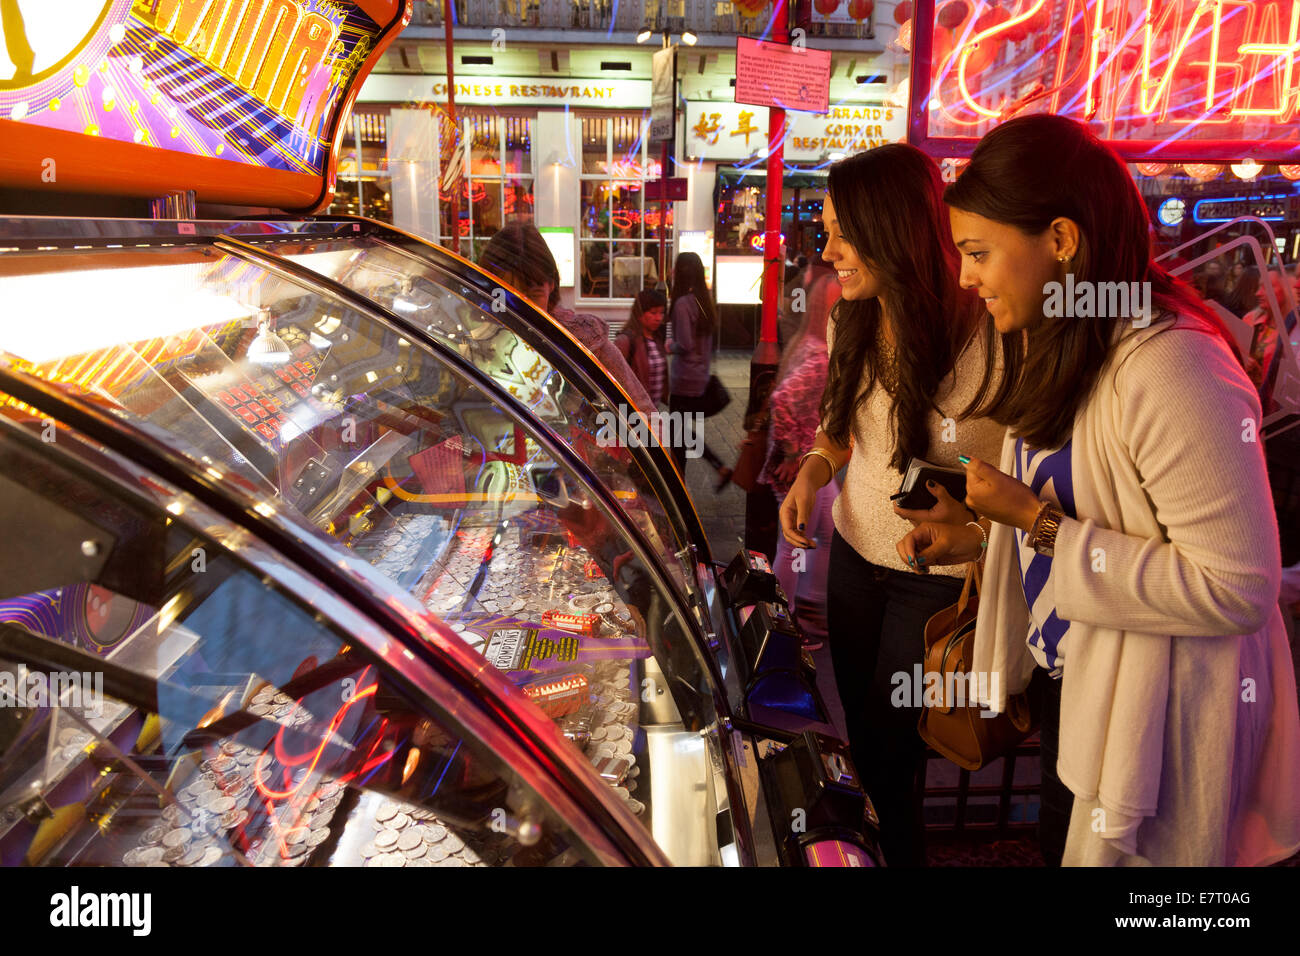 Two women playing gambling games in an amusement arcade, Soho, London UK - Stock Image